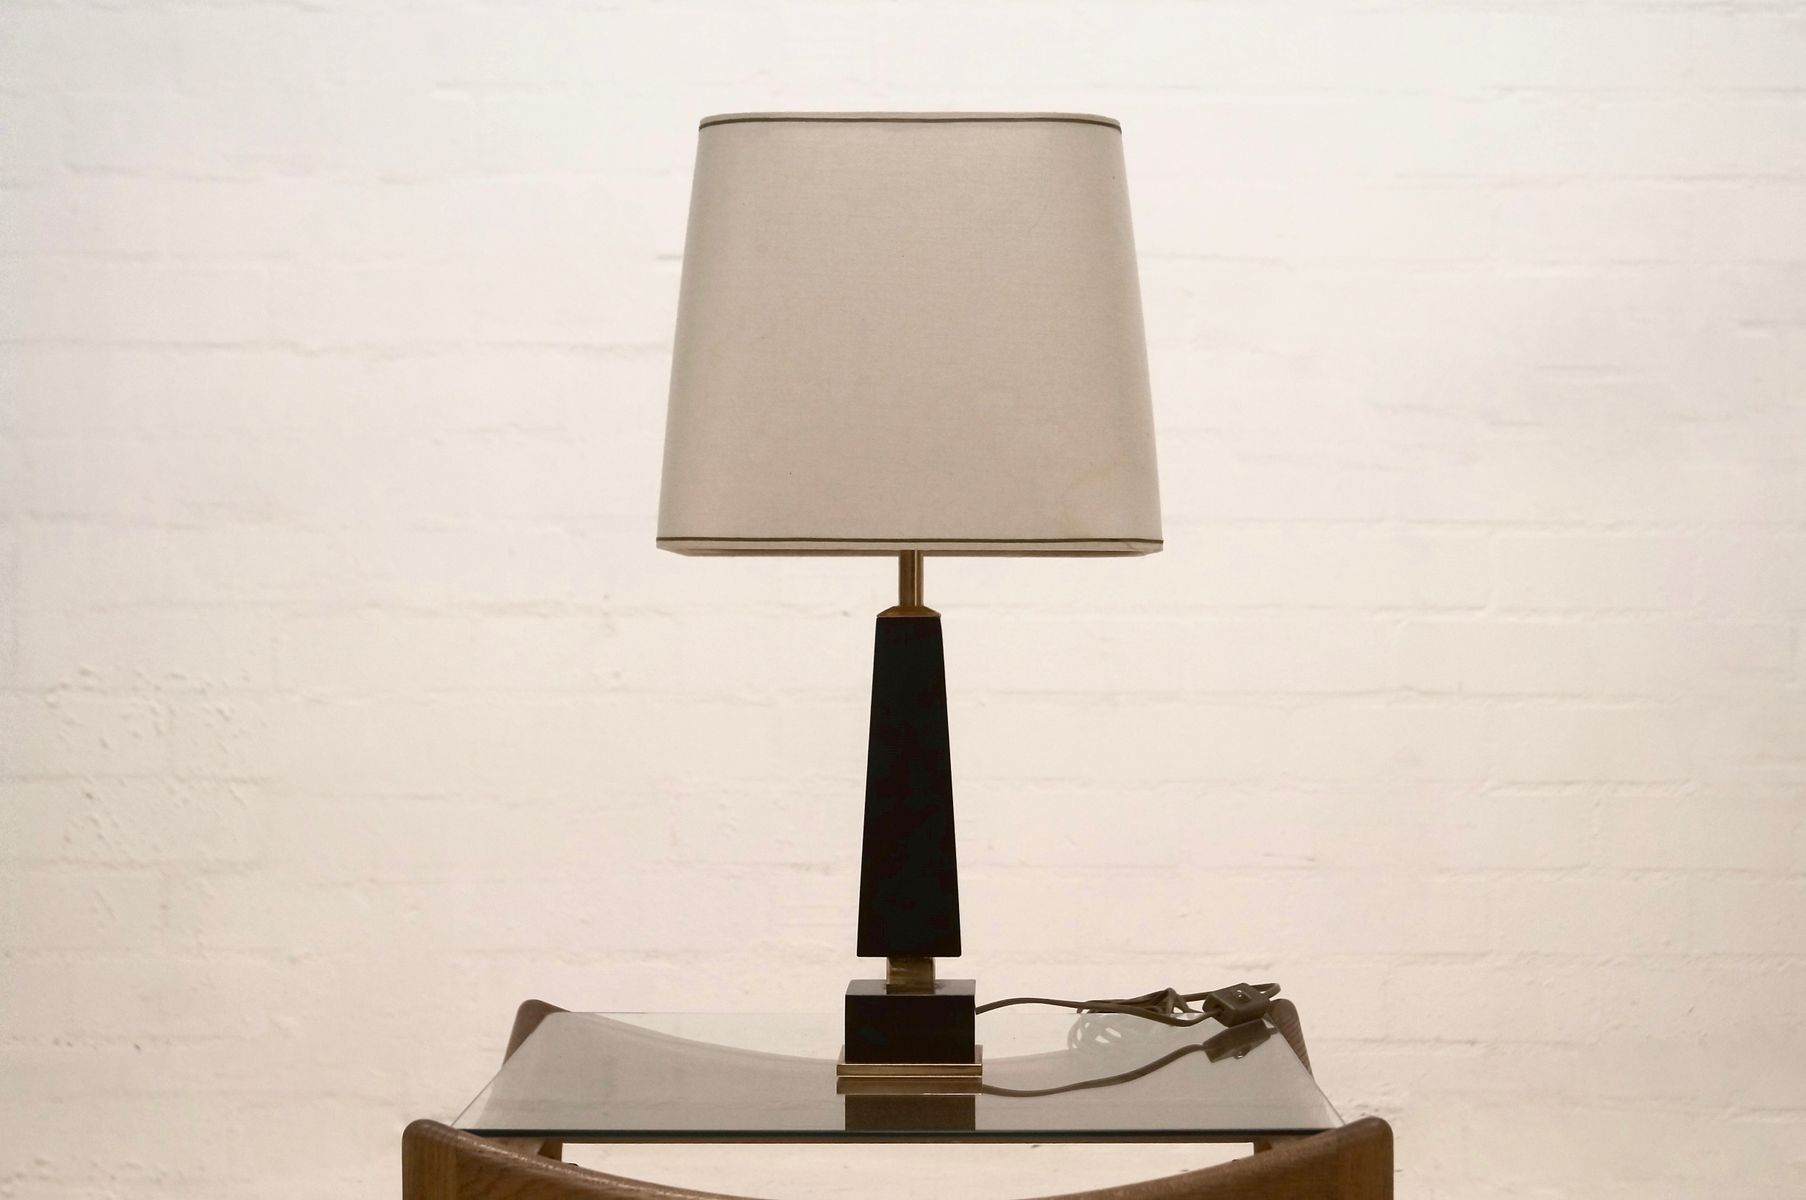 Mid century black resin and brass table lamp 1960s for for Z gallerie century table lamp